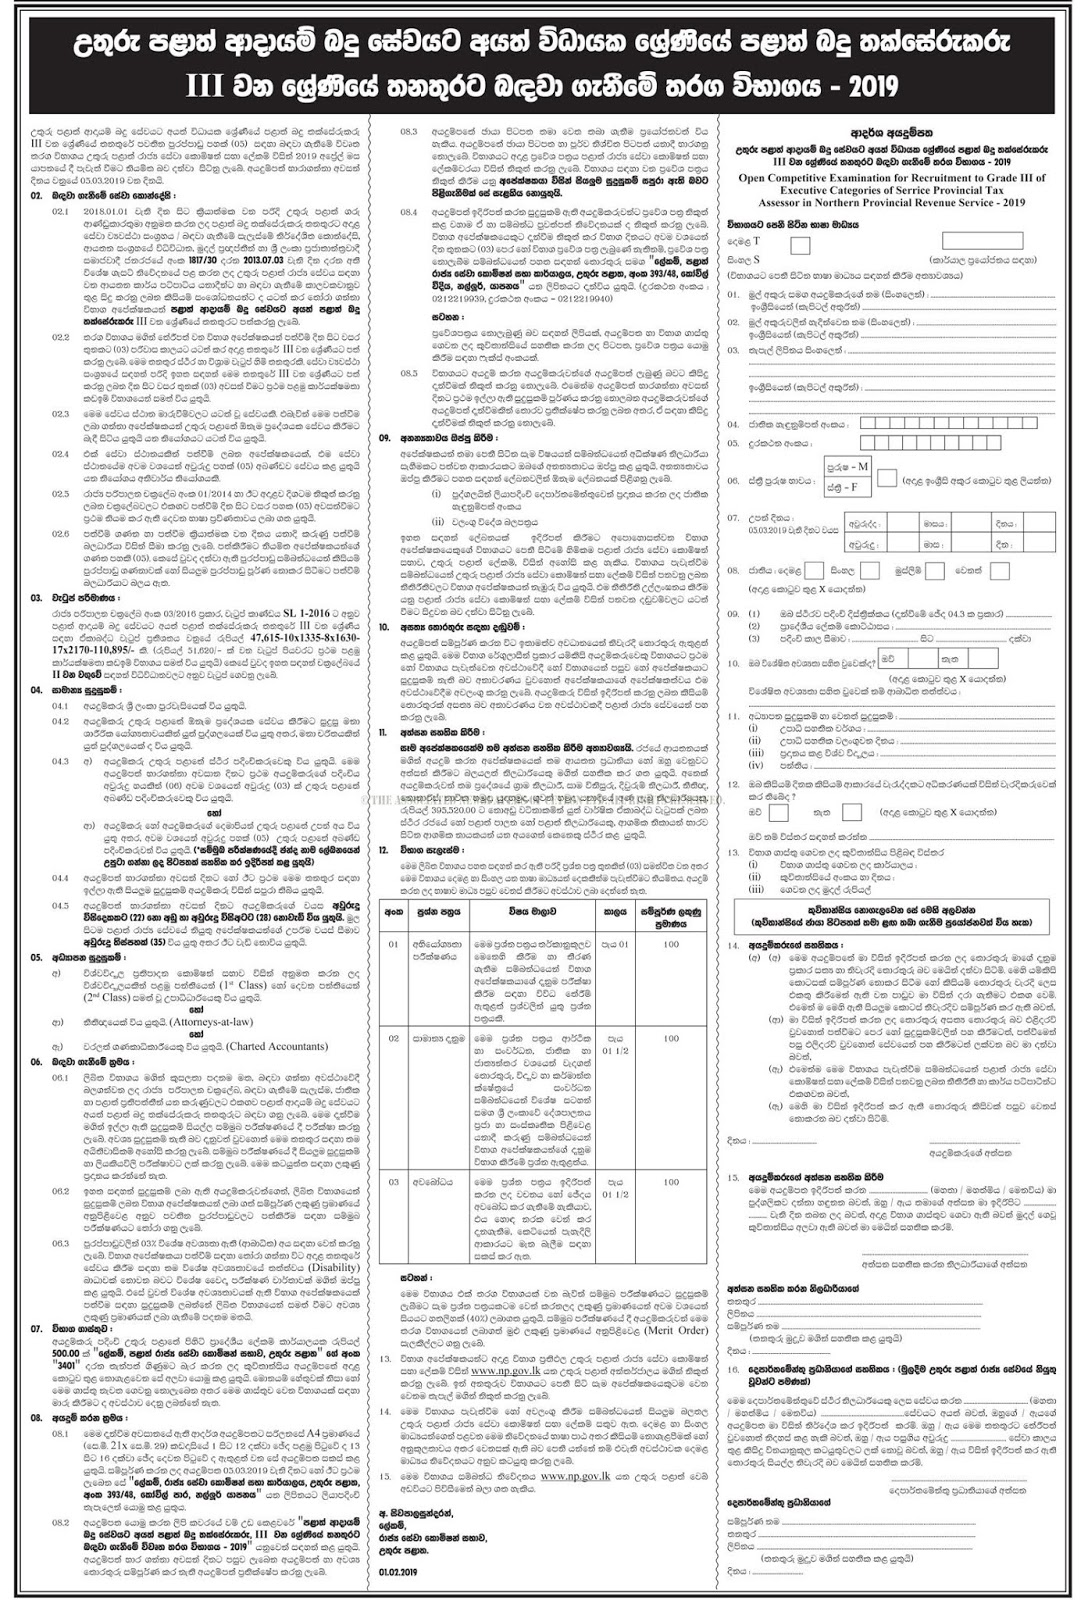 Open Competitive Examination for Recruitment to the Grade III of